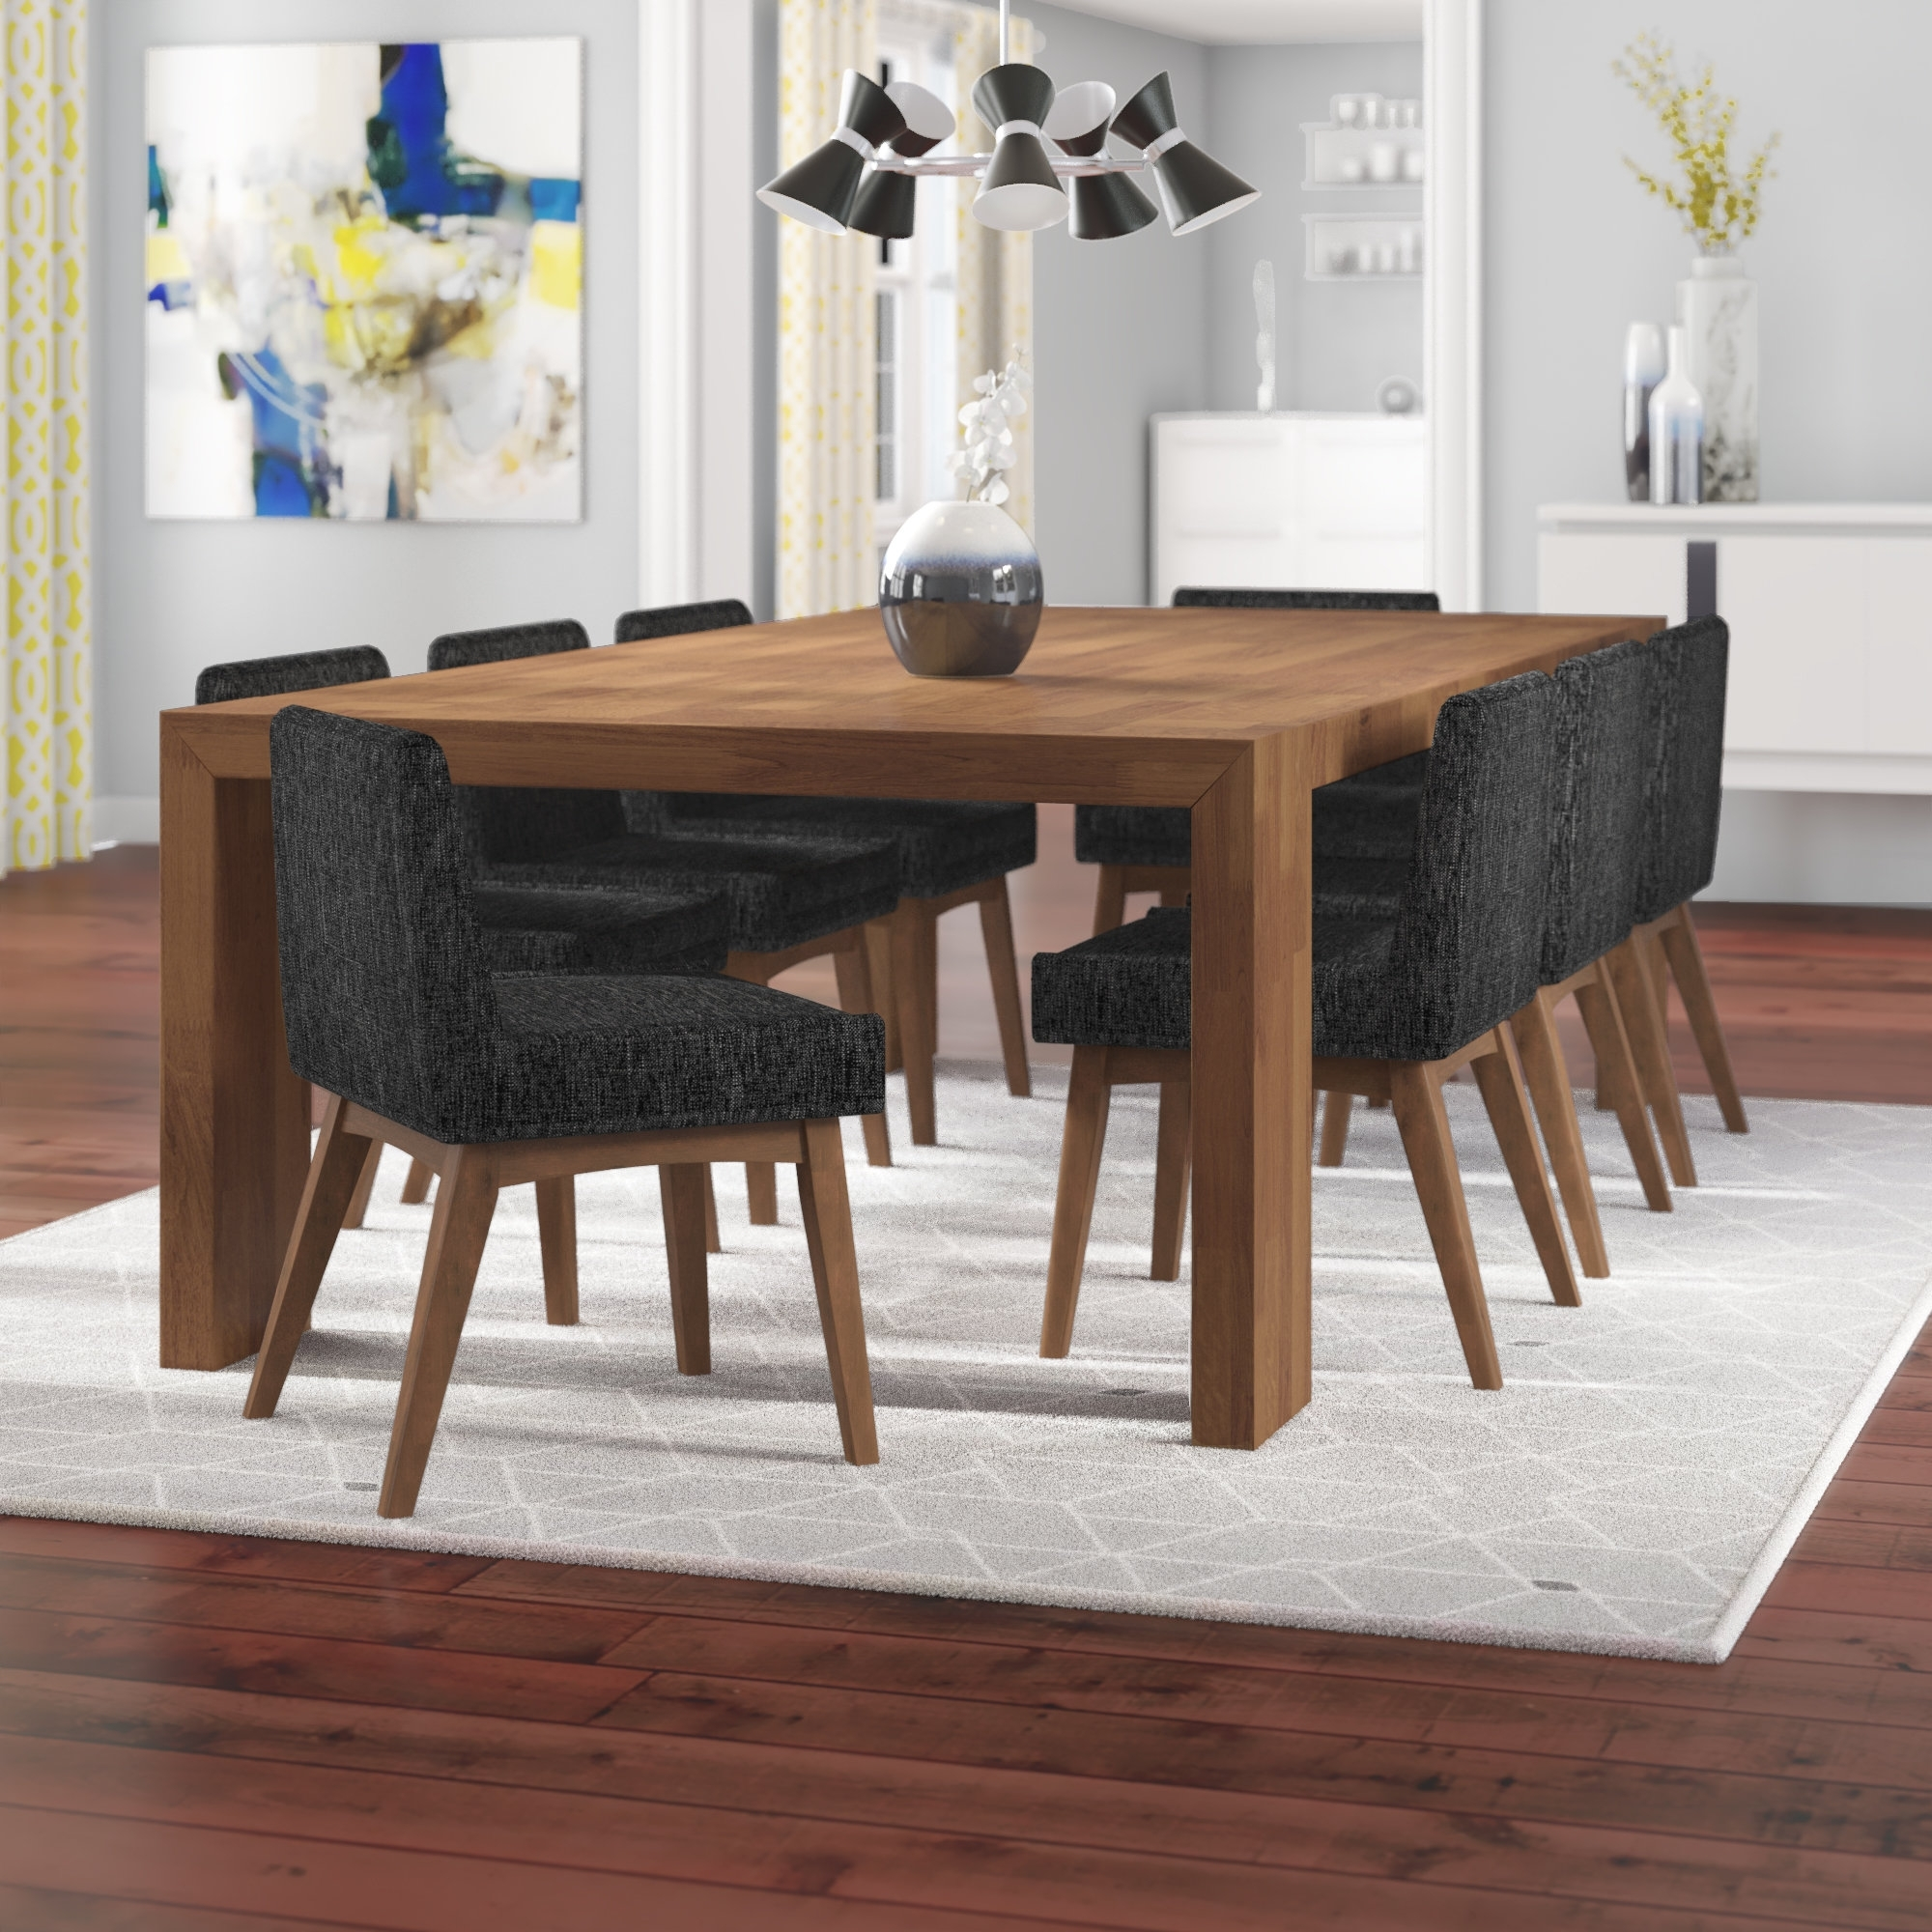 Wayfair In Caira Black 5 Piece Round Dining Sets With Upholstered Side Chairs (View 21 of 25)